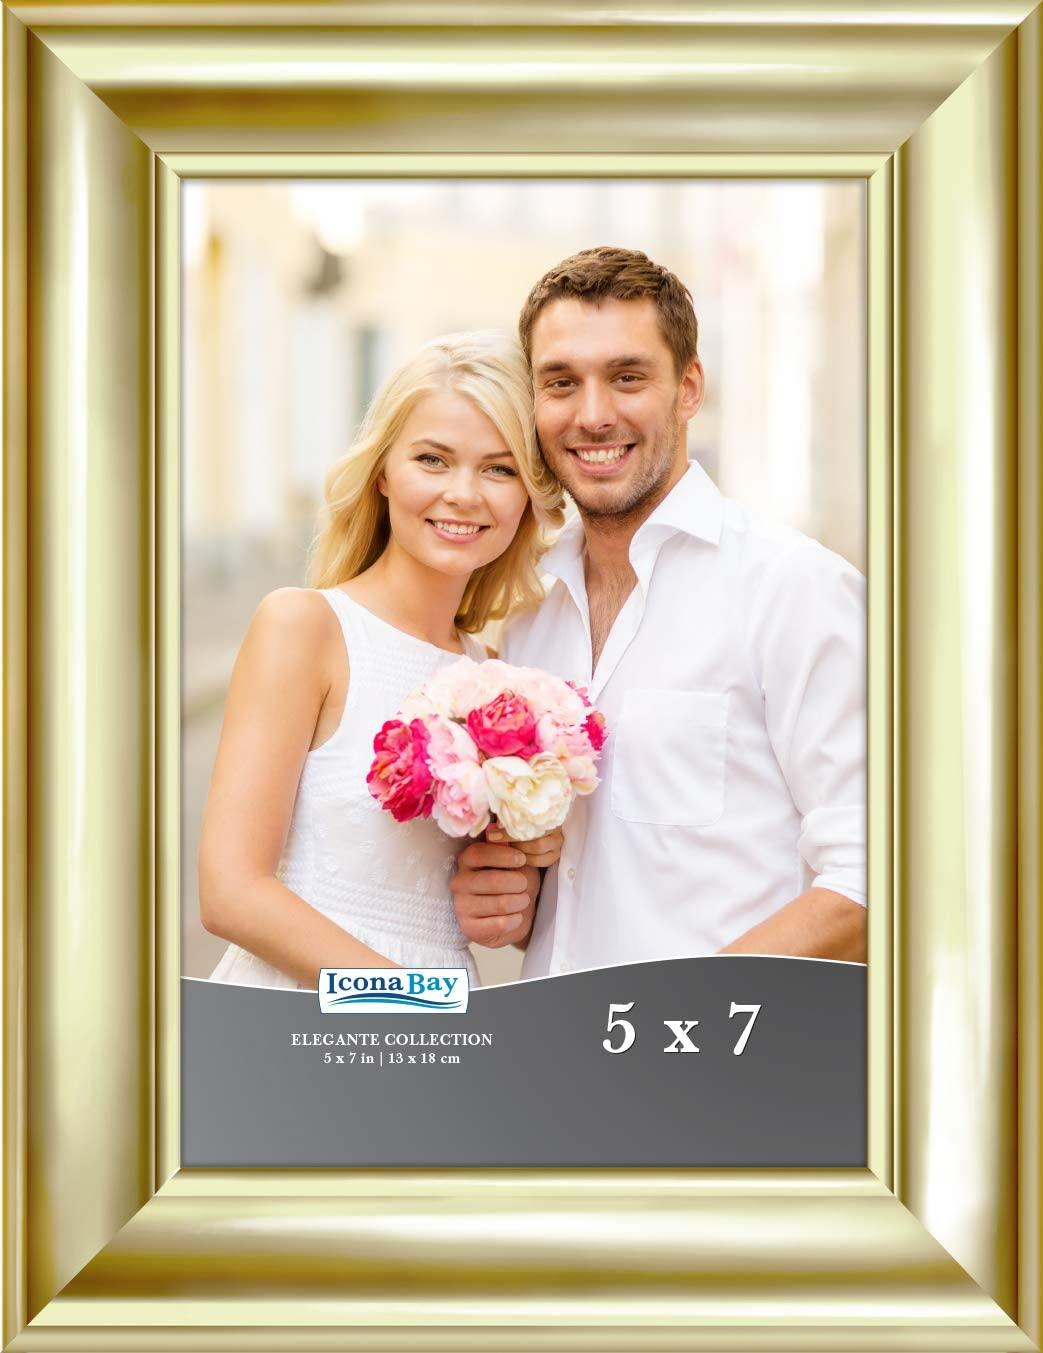 Icona Bay 5x7 Gold Picture Frame, Contemporary Photo Frame 5 x 7, Wall Mount or Table Top, Elegante Collection